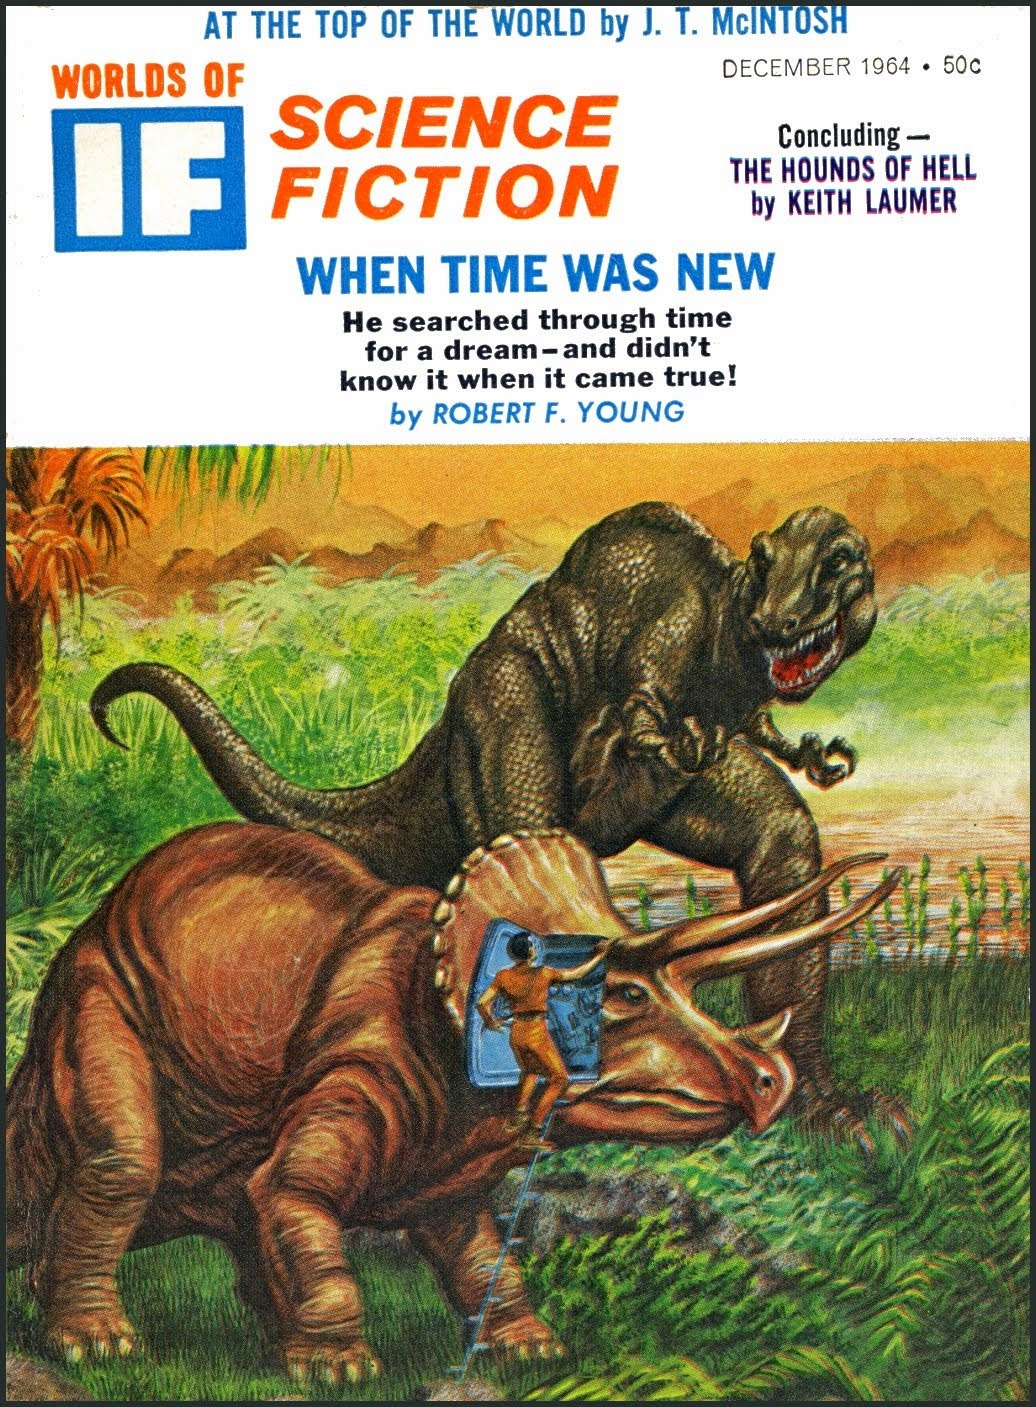 http://pulpcovers.com/when-time-was-new/